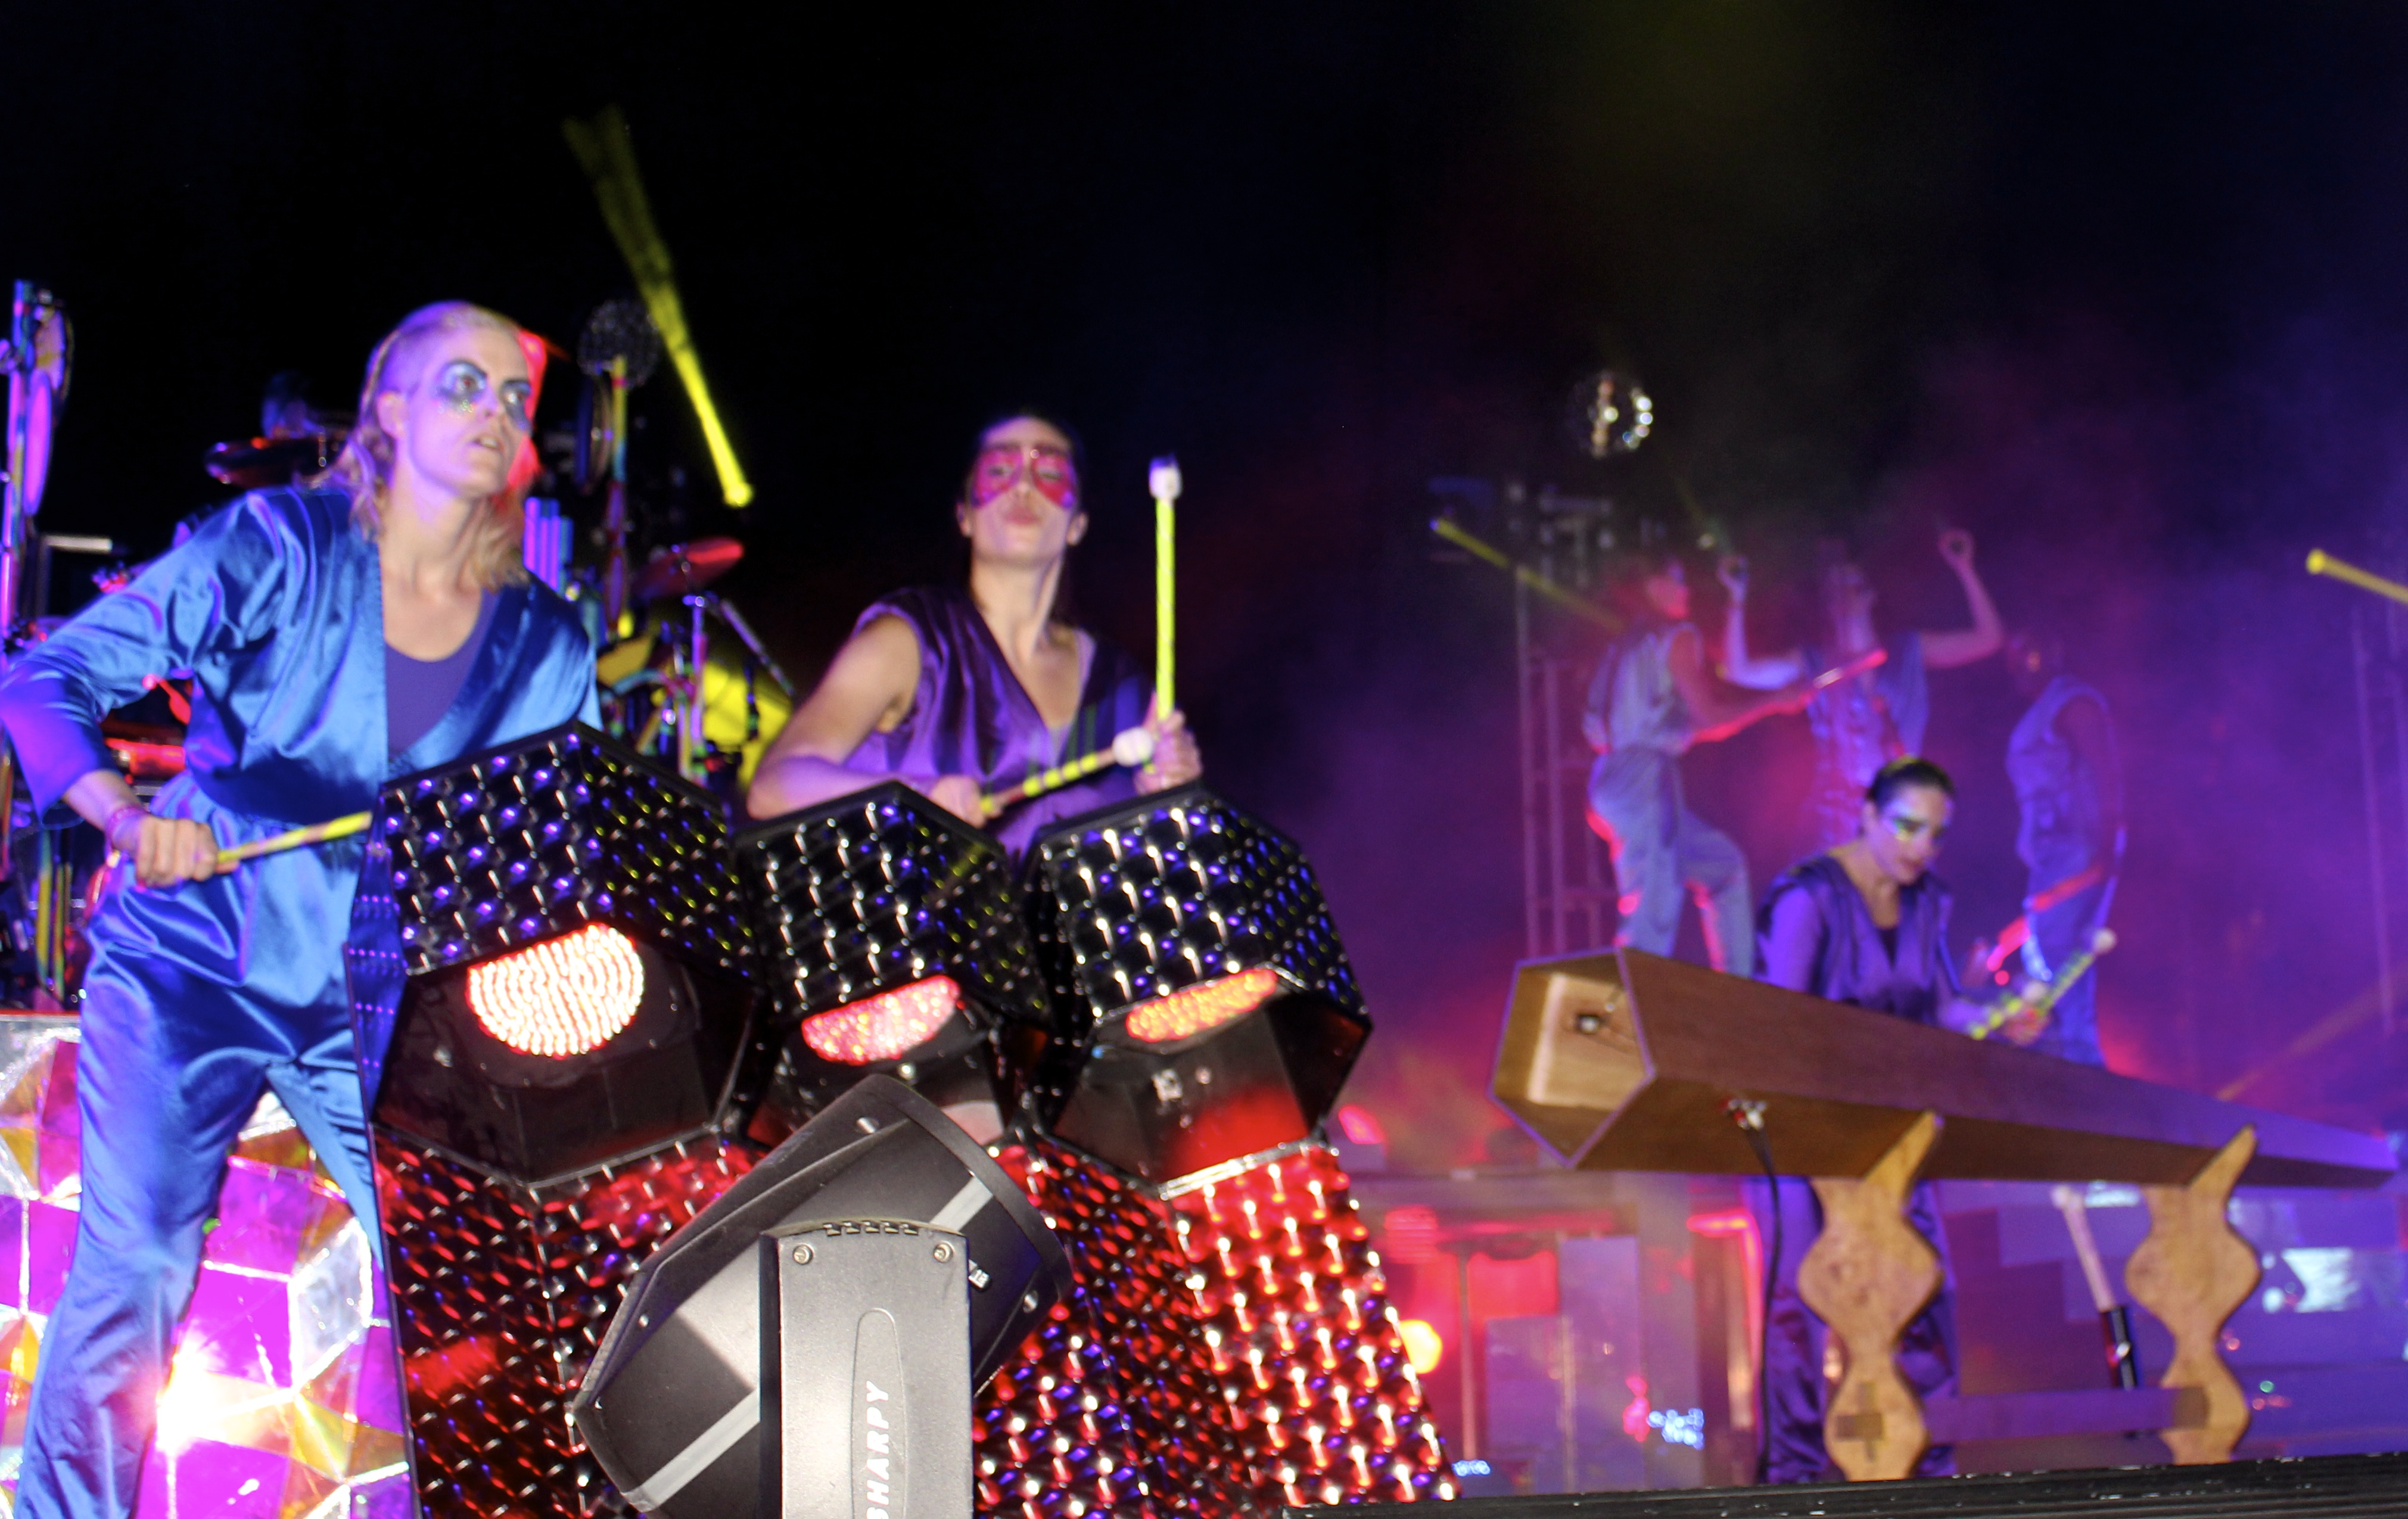 The Knife & Karin on Drums